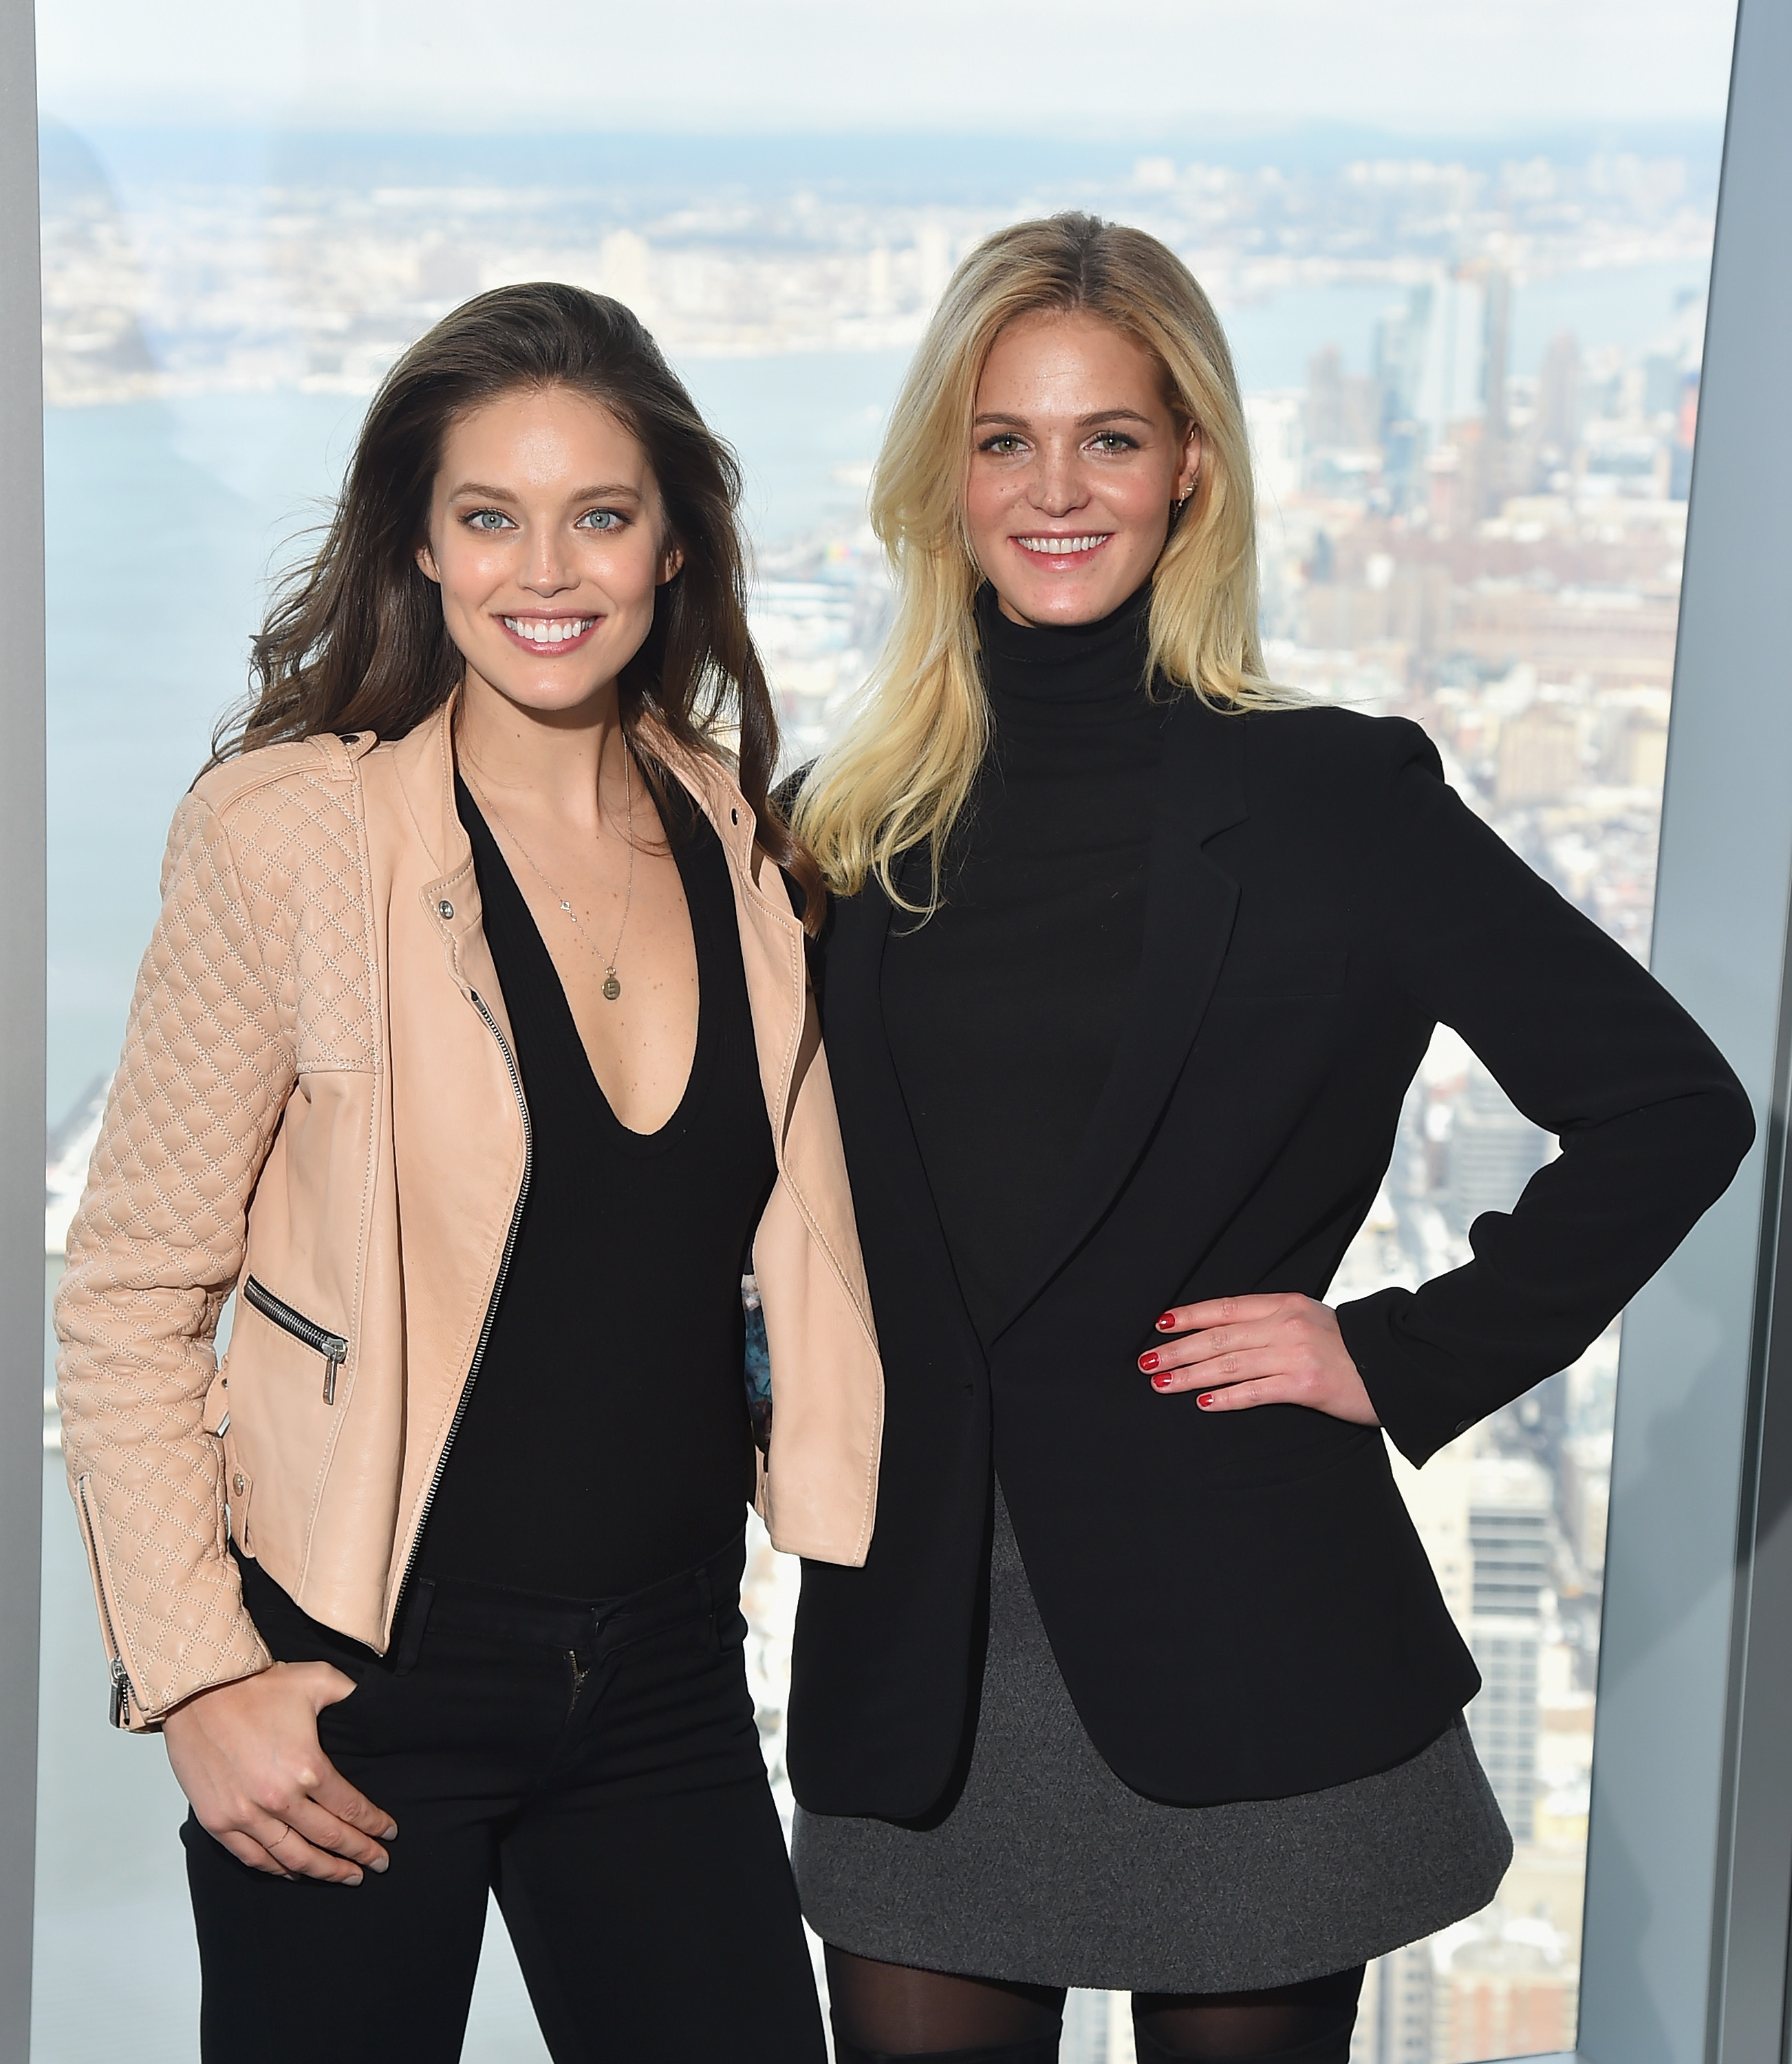 Sports Illustrated Swimsuit Models Emily DiDonato and Erin Heatherton reveal SI Swimsuit 2016 launch week events in New York City at One World Observatory